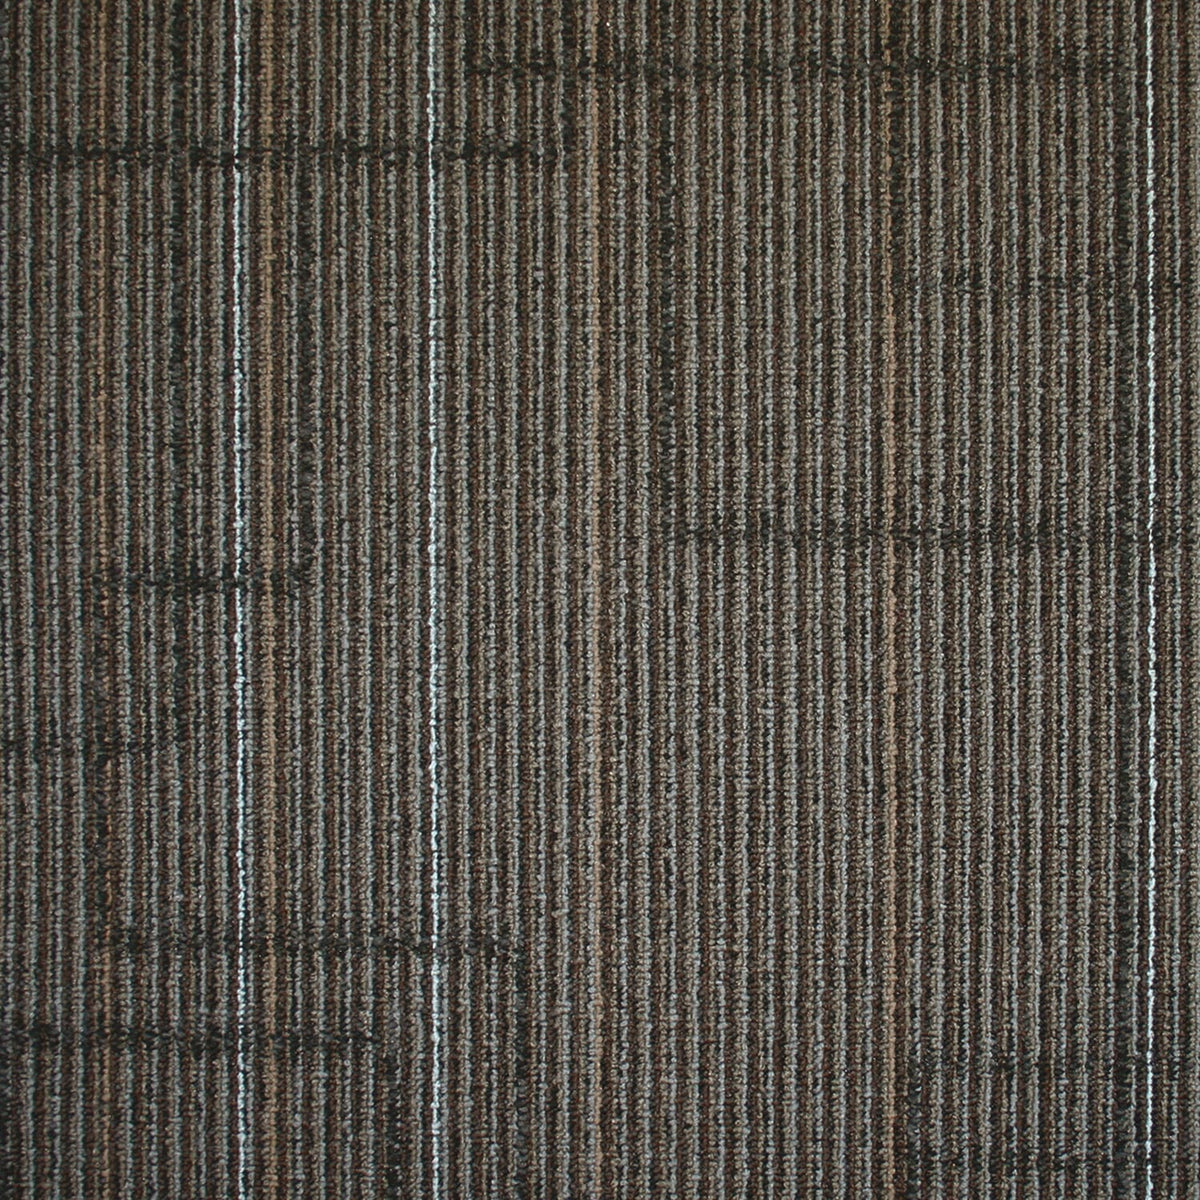 Kraus - Calatrava - Carpet Tile - Graphite